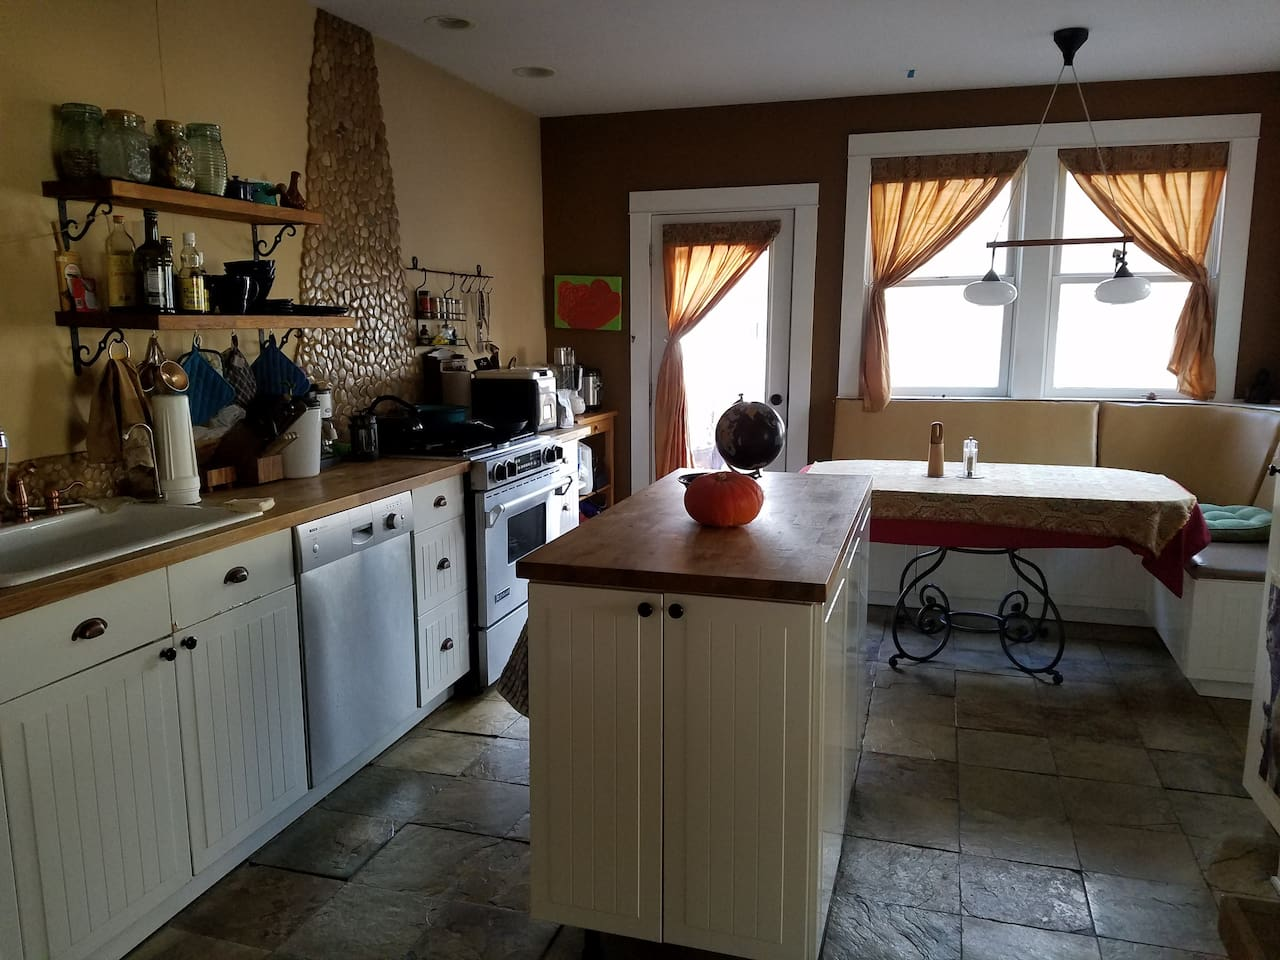 Big kitchen with all the standard amenities. Opens up to the deck and back yard.